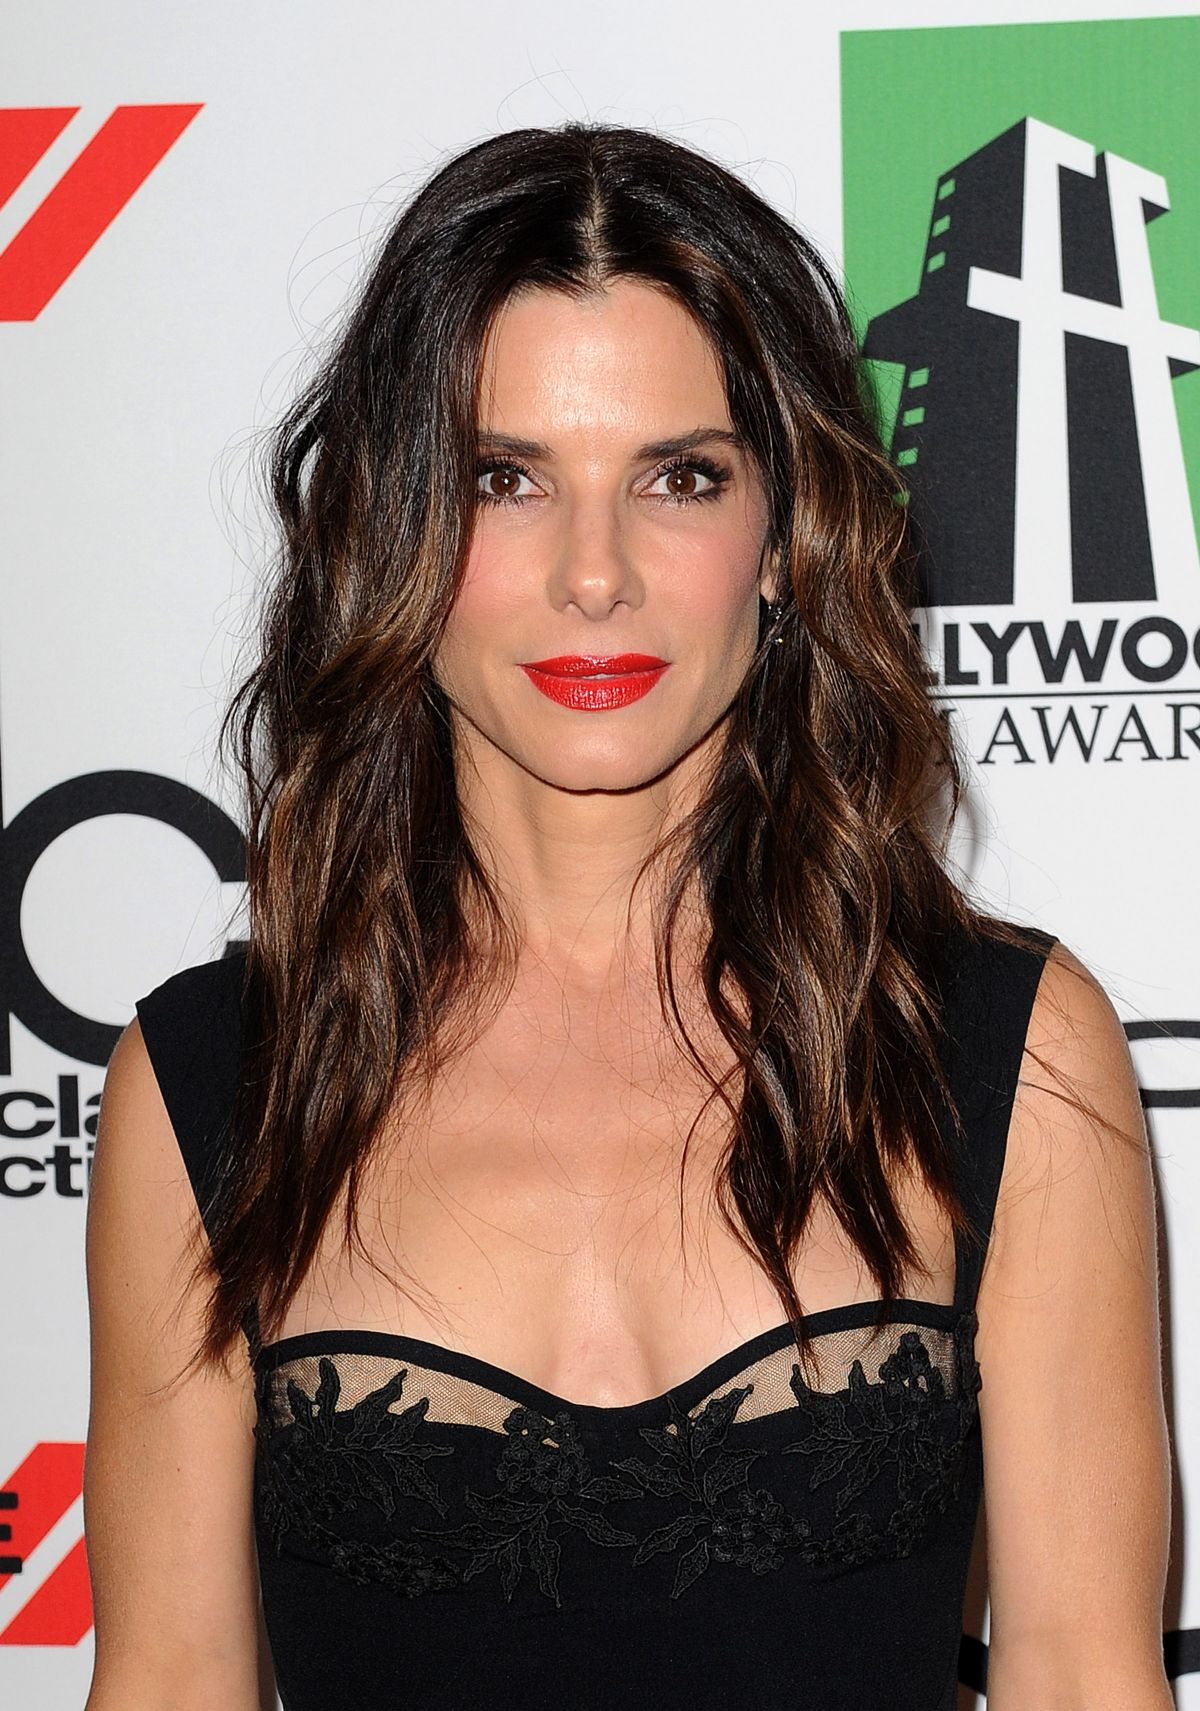 What are some highlights of Sandra Bullock's filmography?